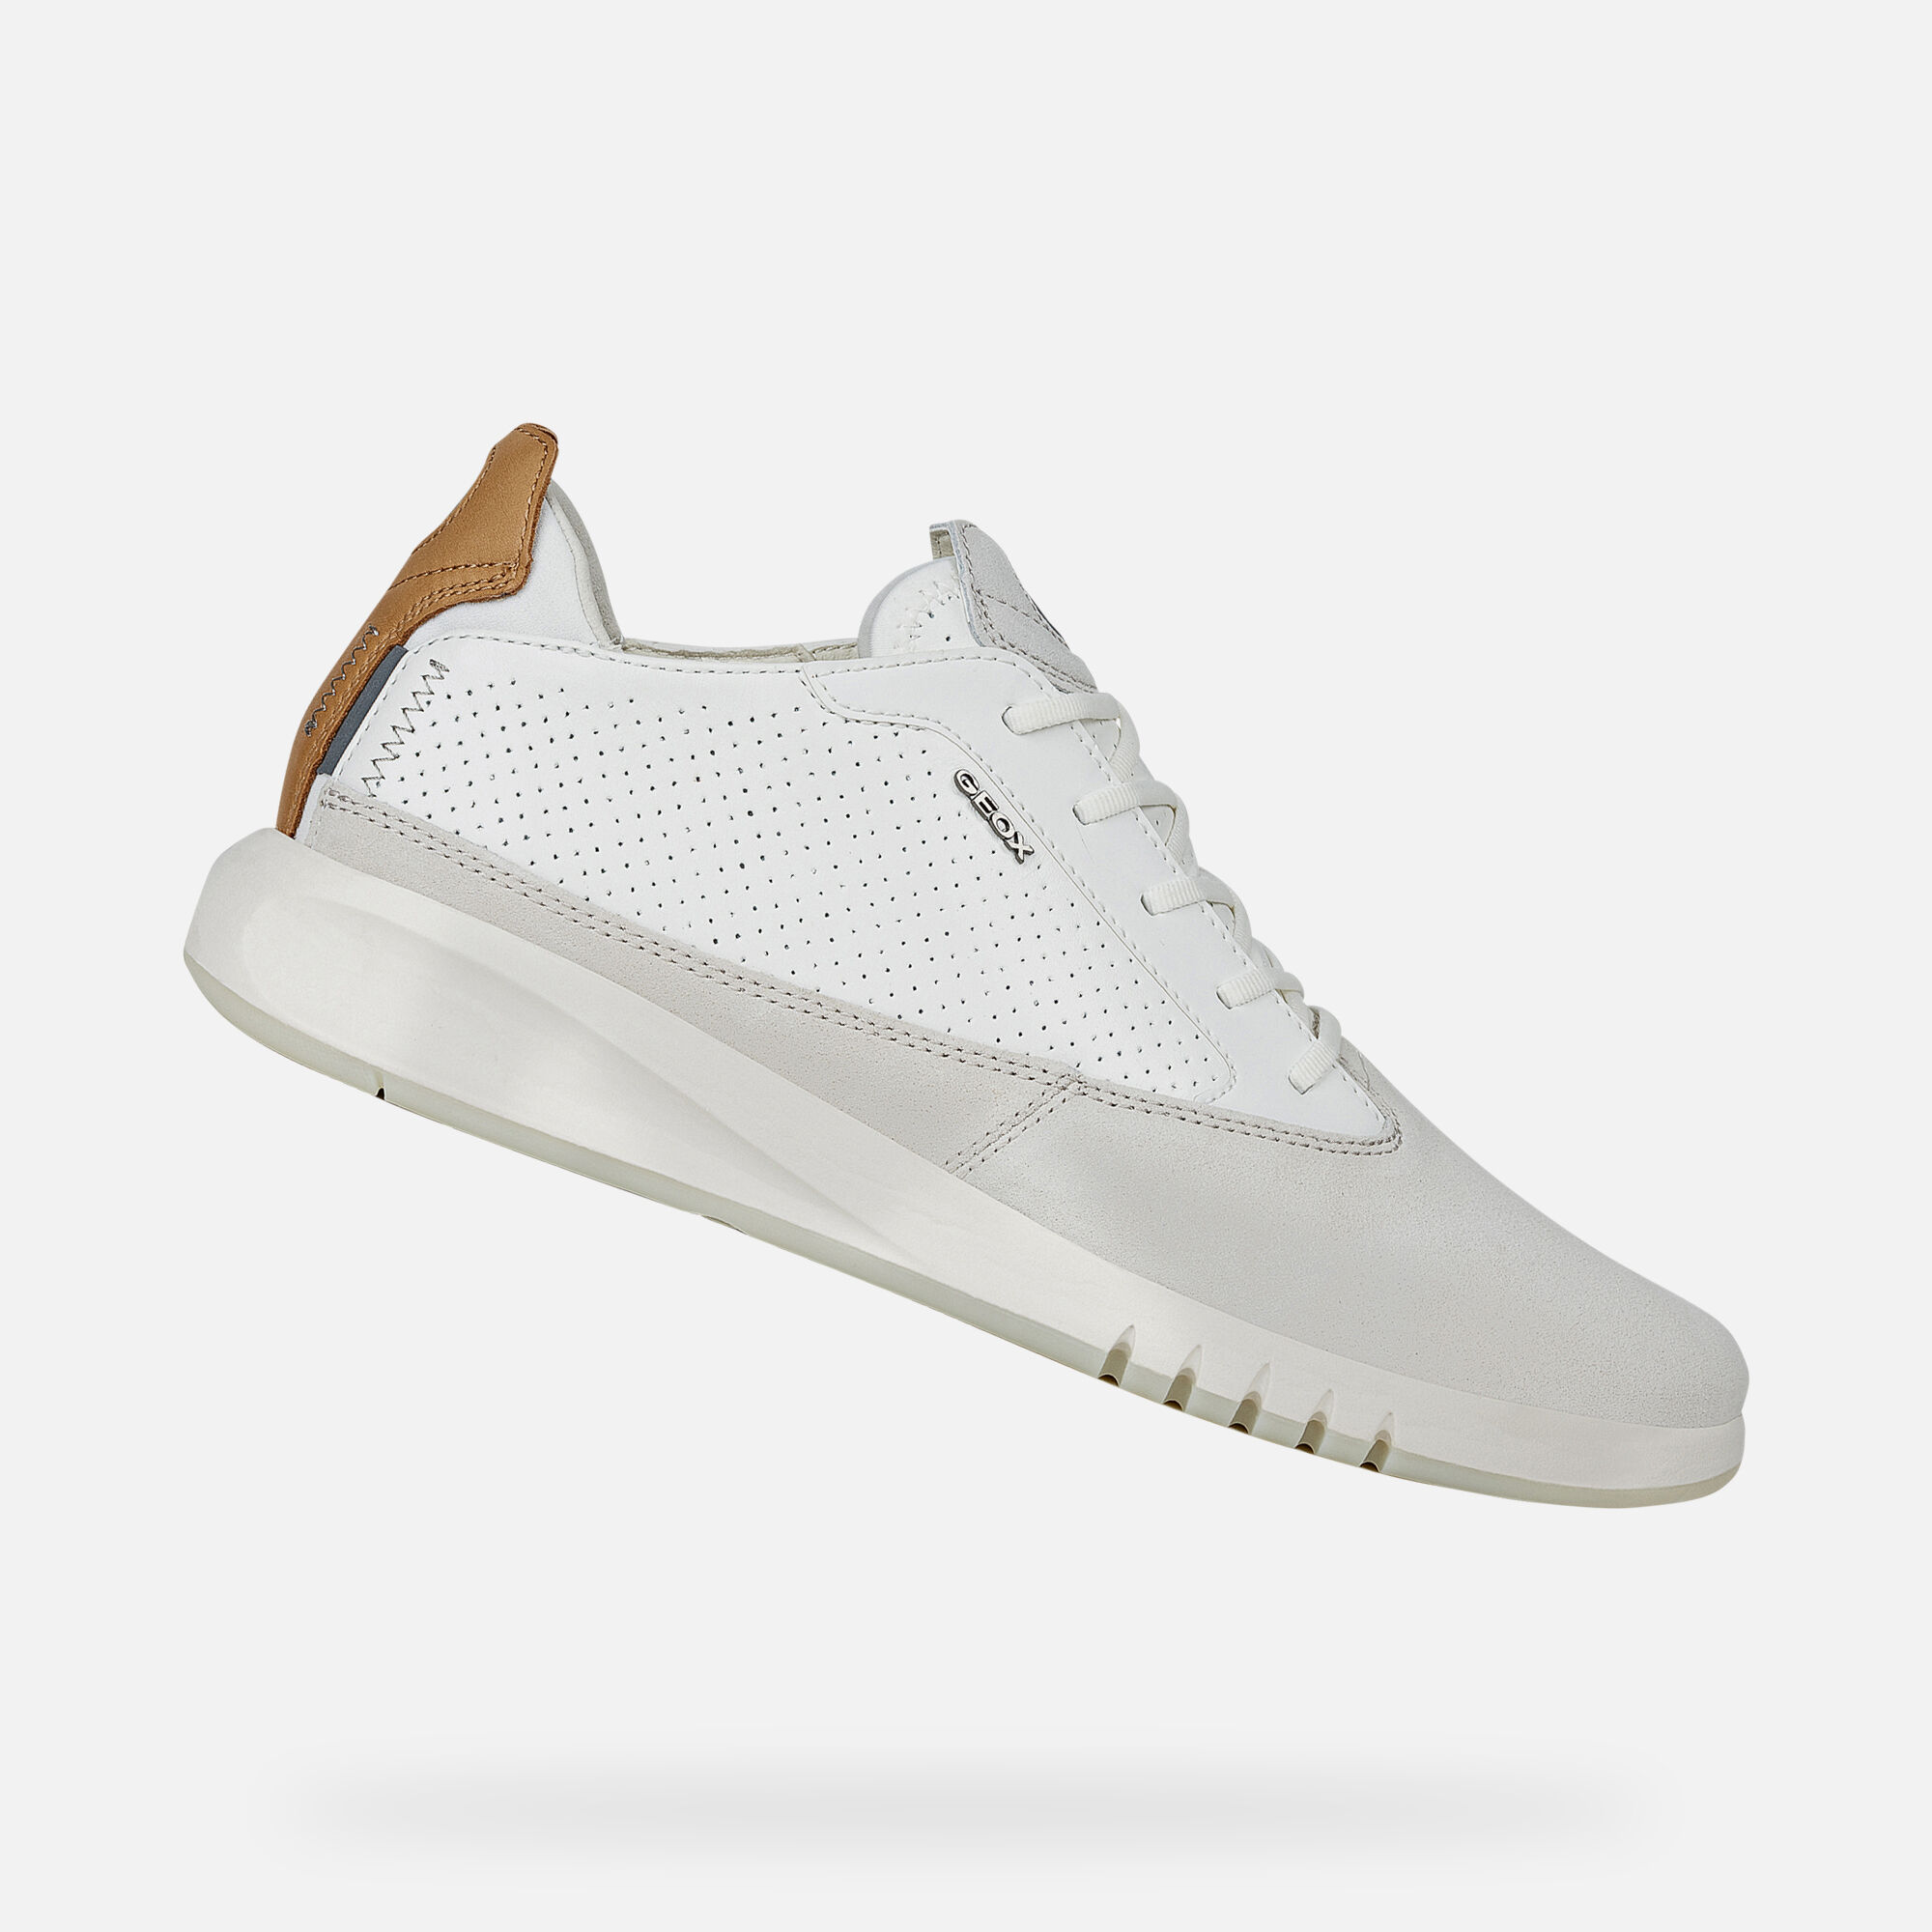 Geox AERANTIS Homme Sneakers Papyrus | Geox Stagione 1920